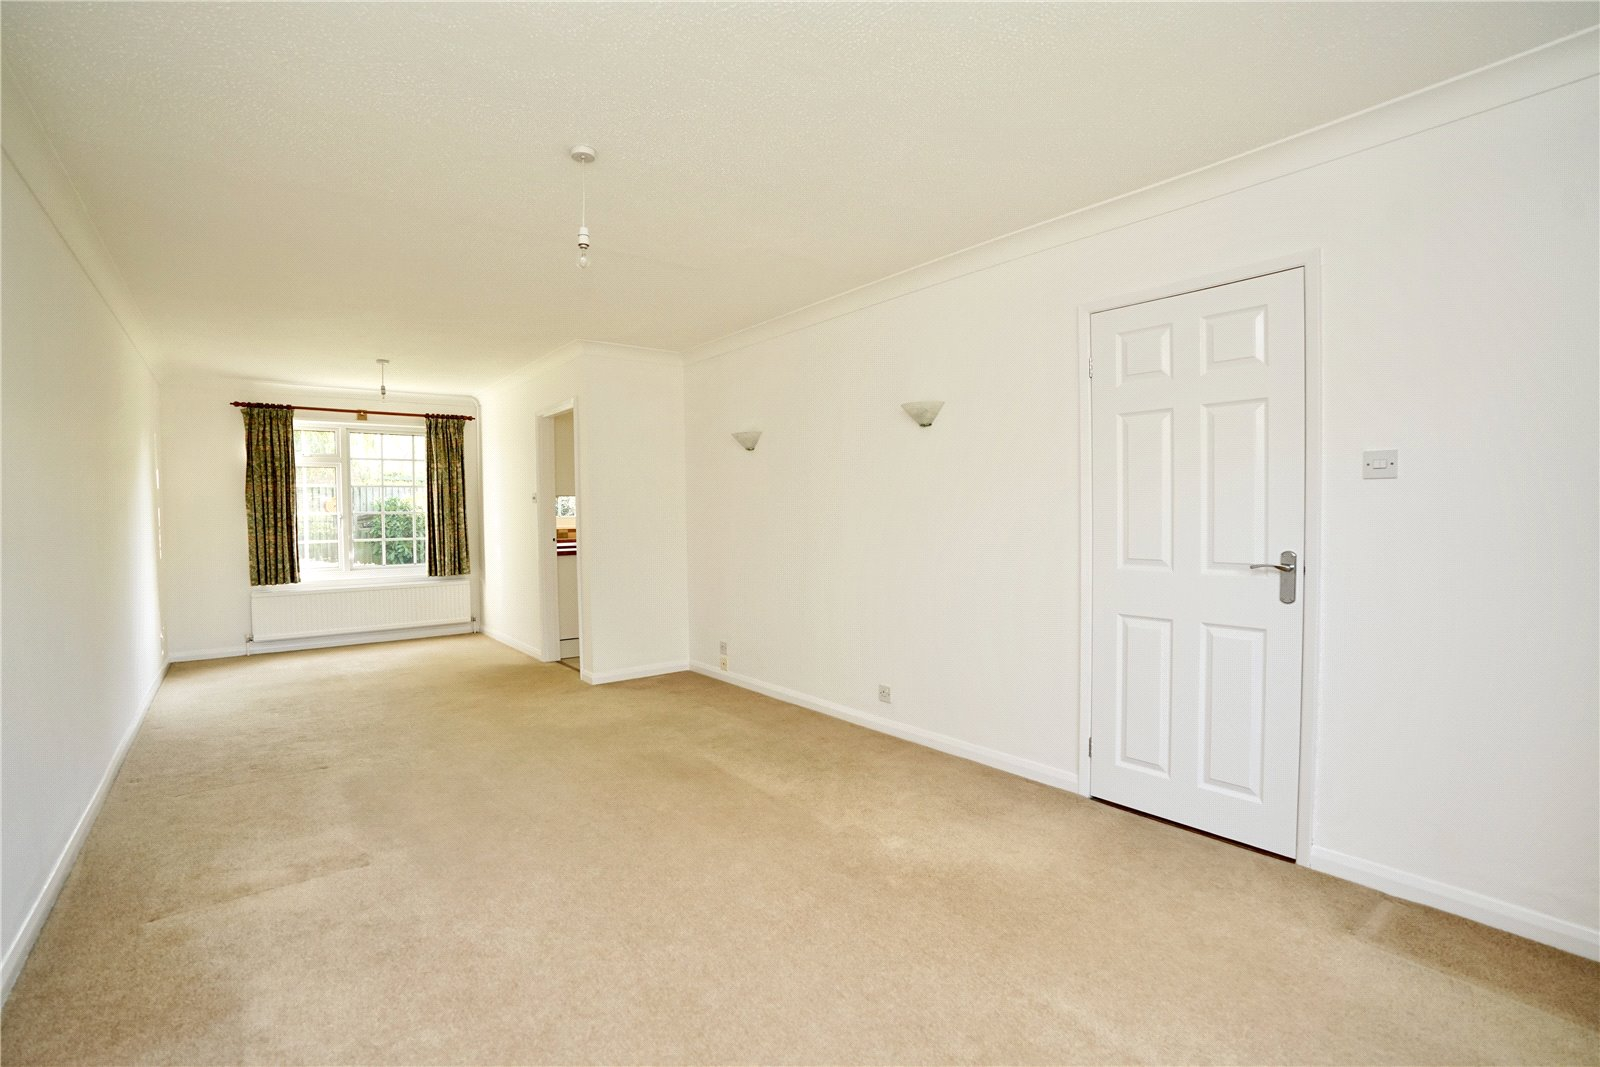 4 bed house for sale in All Hallows, Sandy  - Property Image 3